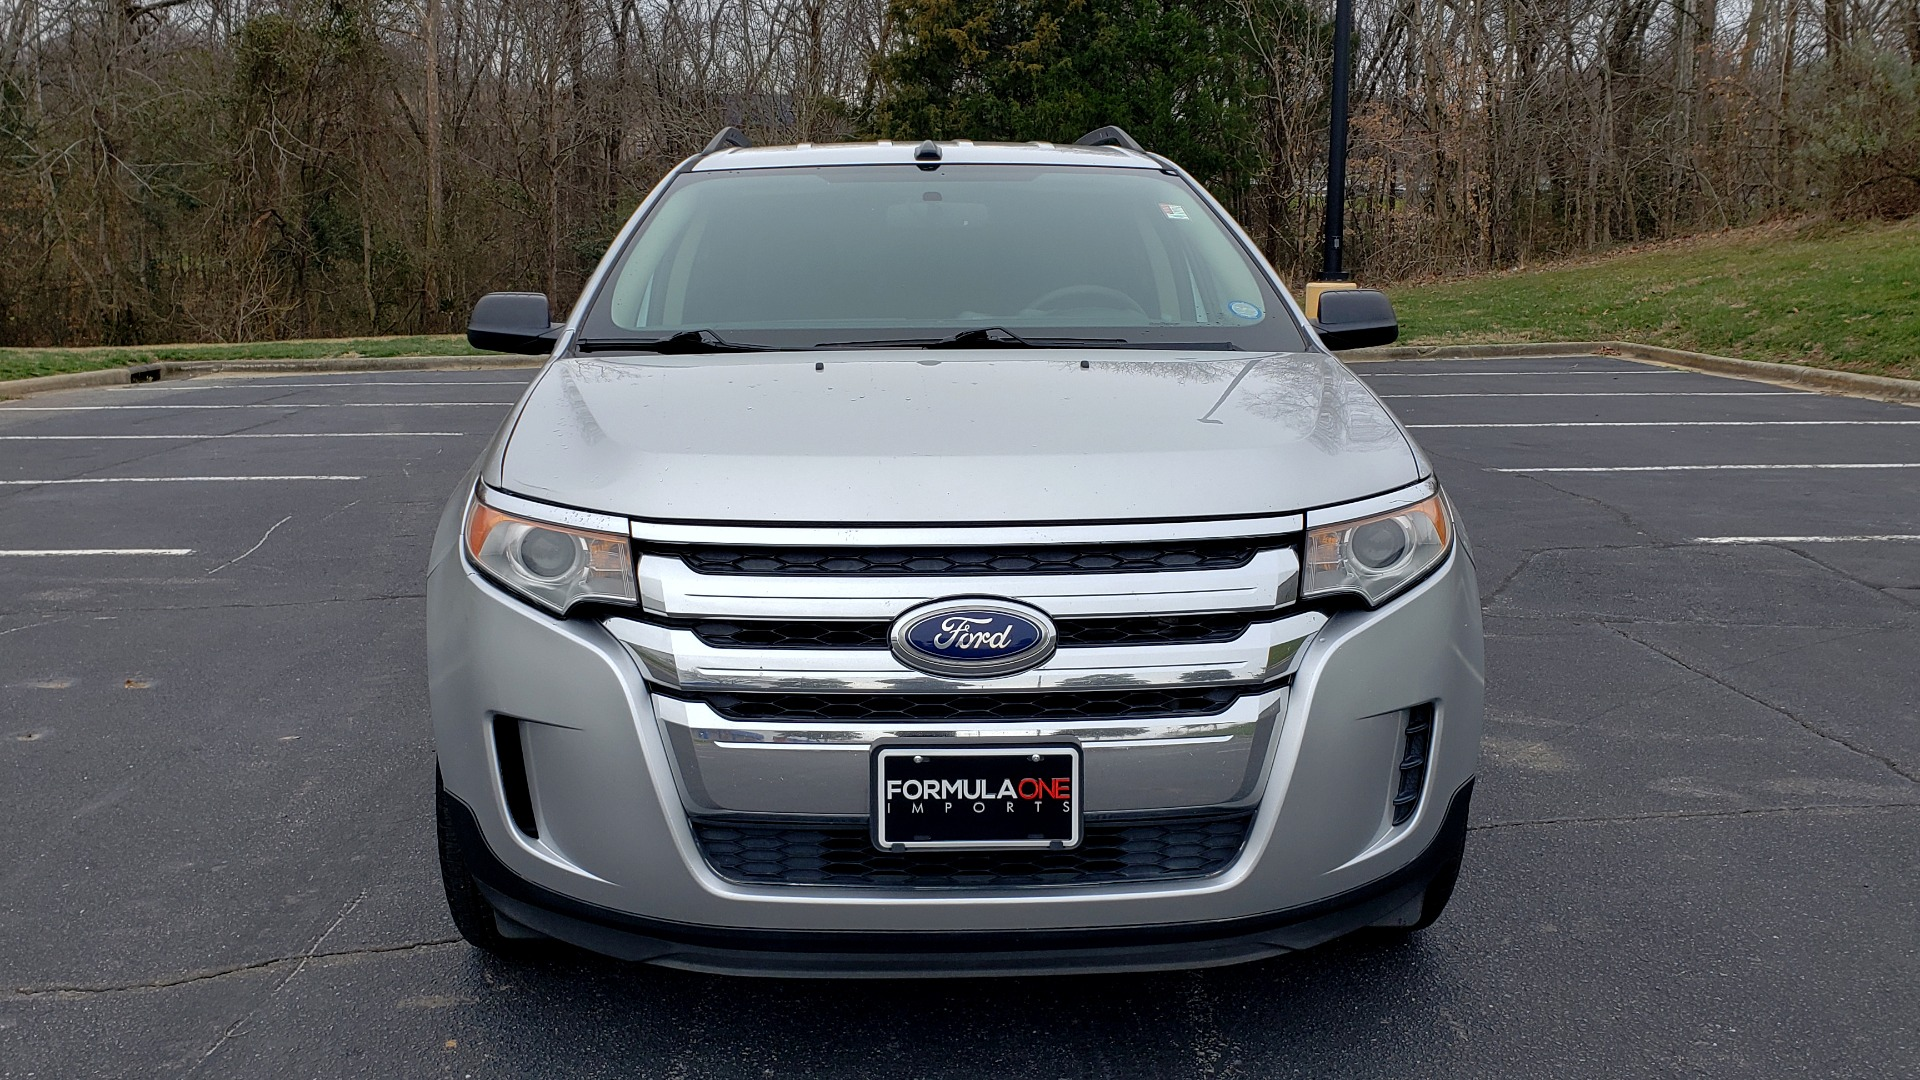 Used 2013 Ford EDGE SE / AWD / 18 IN WHEELS / SYNC / 3.5L V6 / AUTO for sale Sold at Formula Imports in Charlotte NC 28227 21